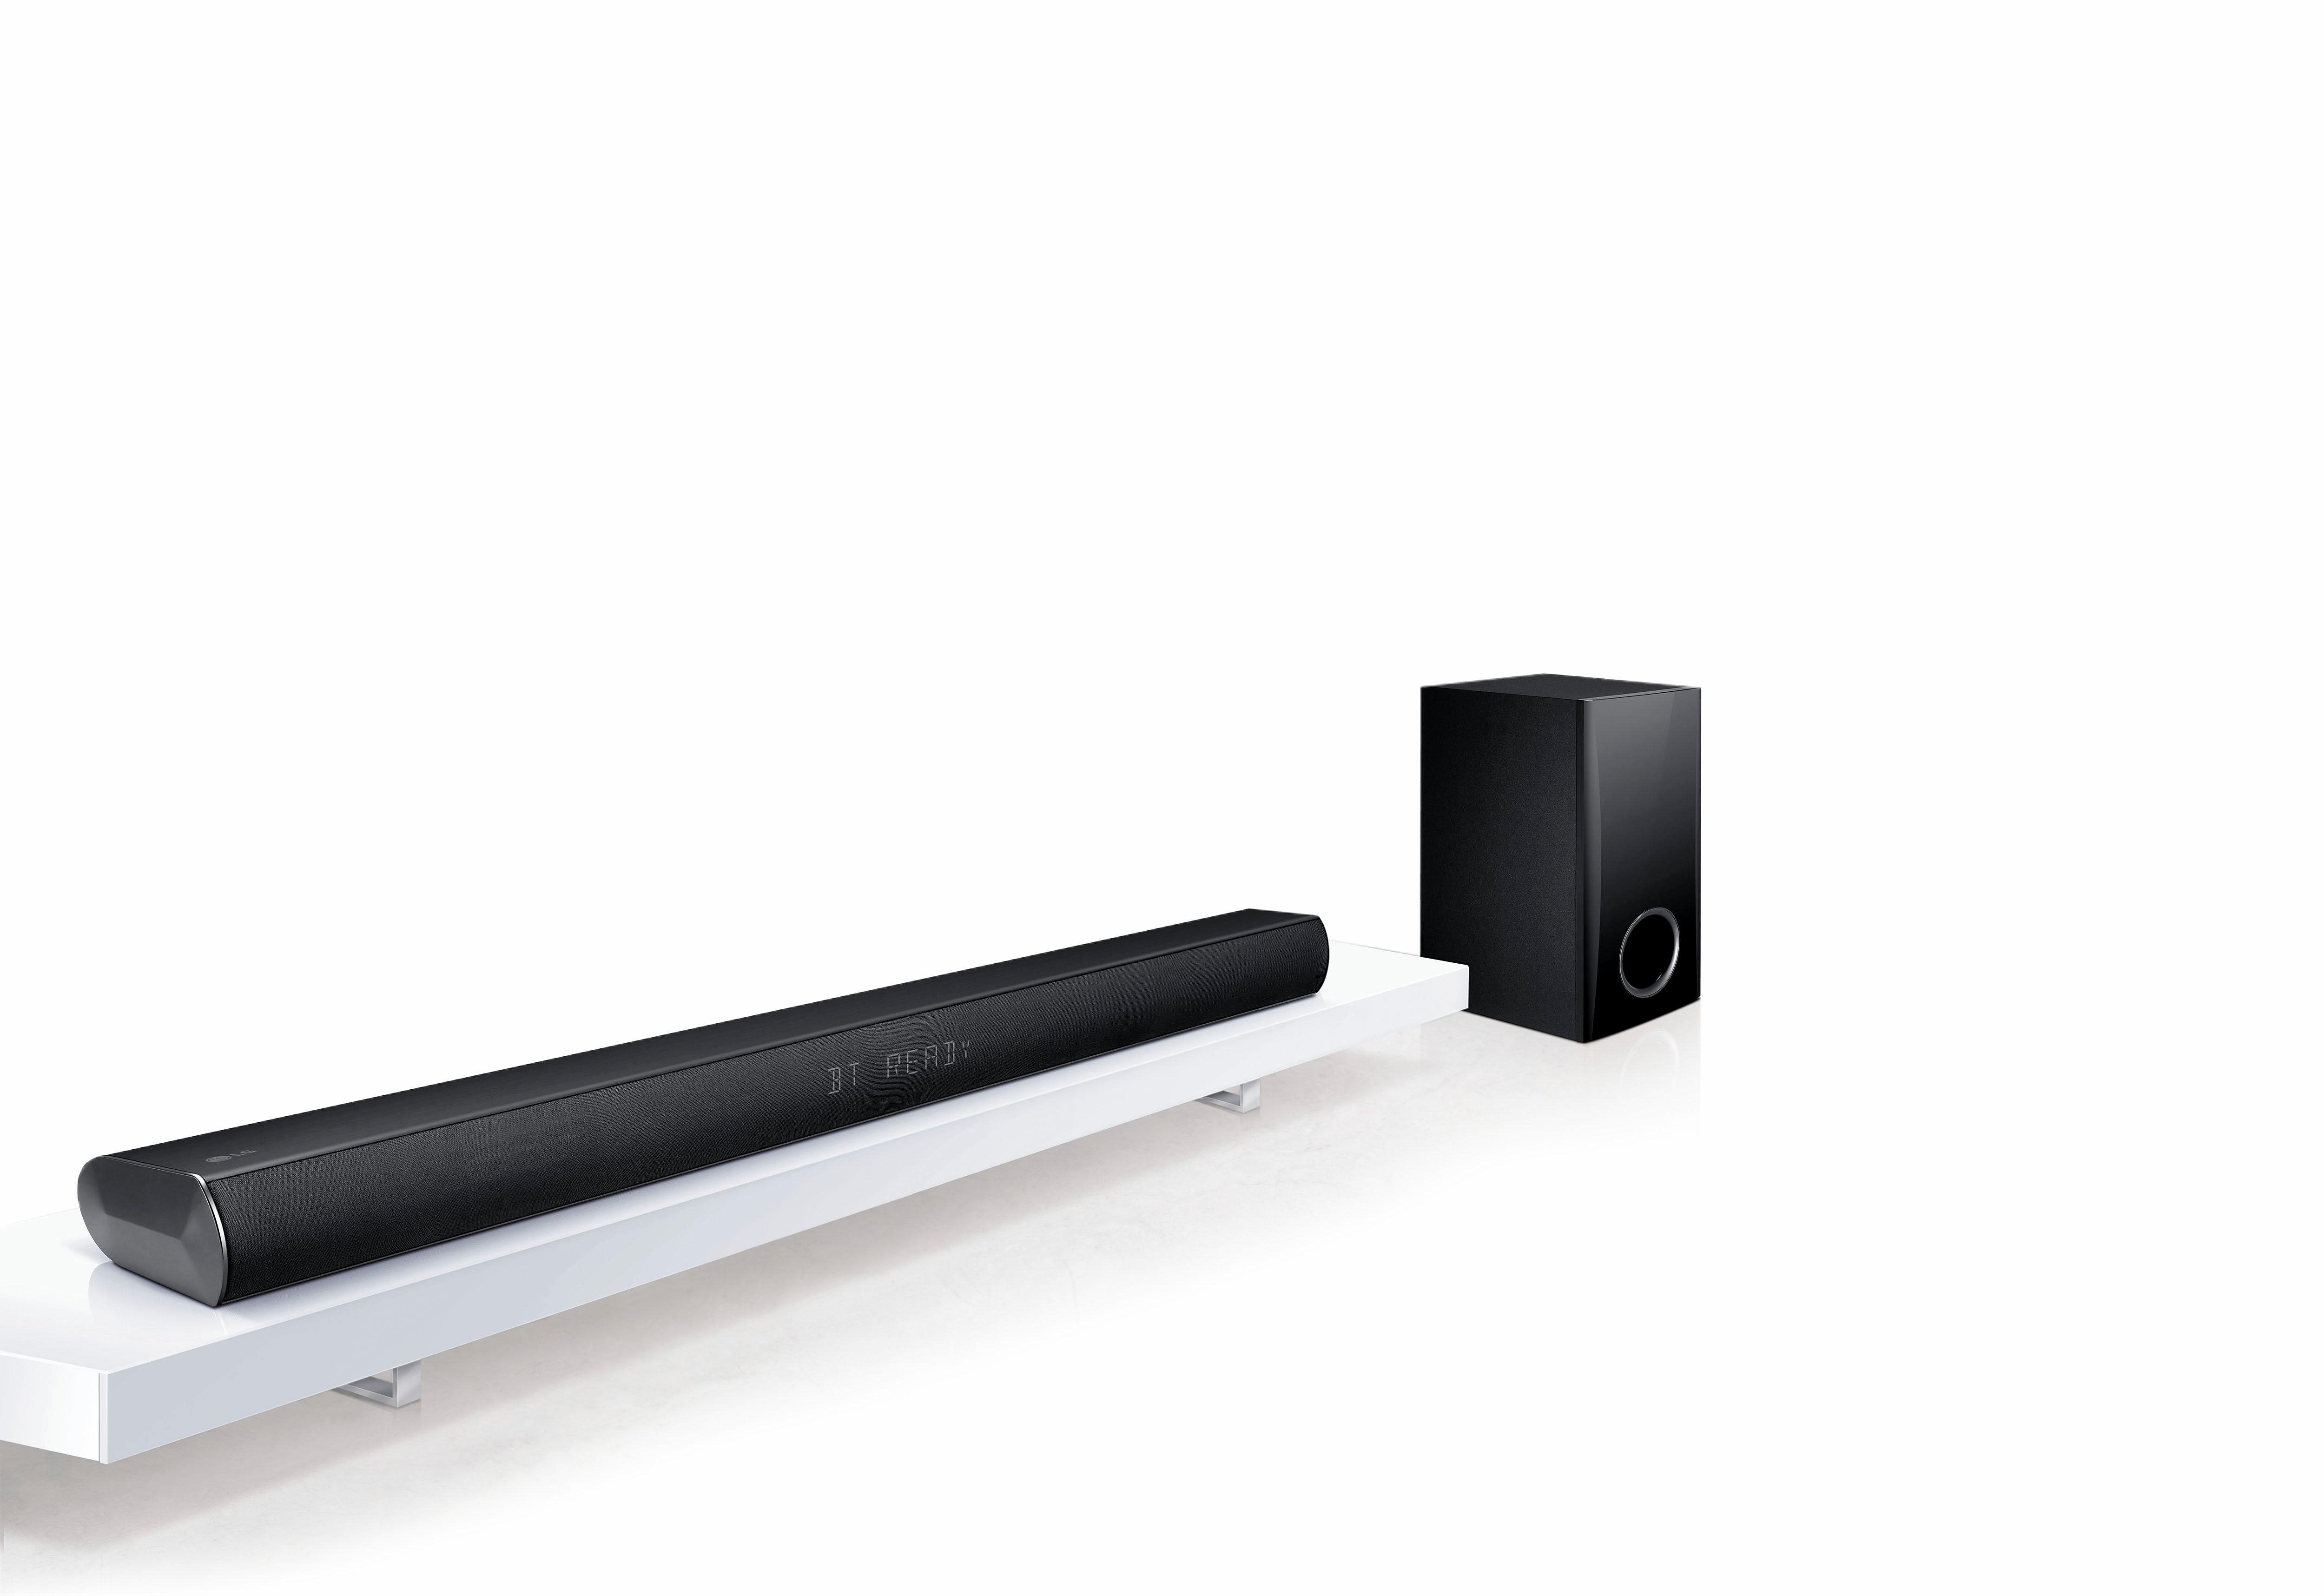 LG LAC450B 2.1 Soundbar (120 W, Bluetooth)